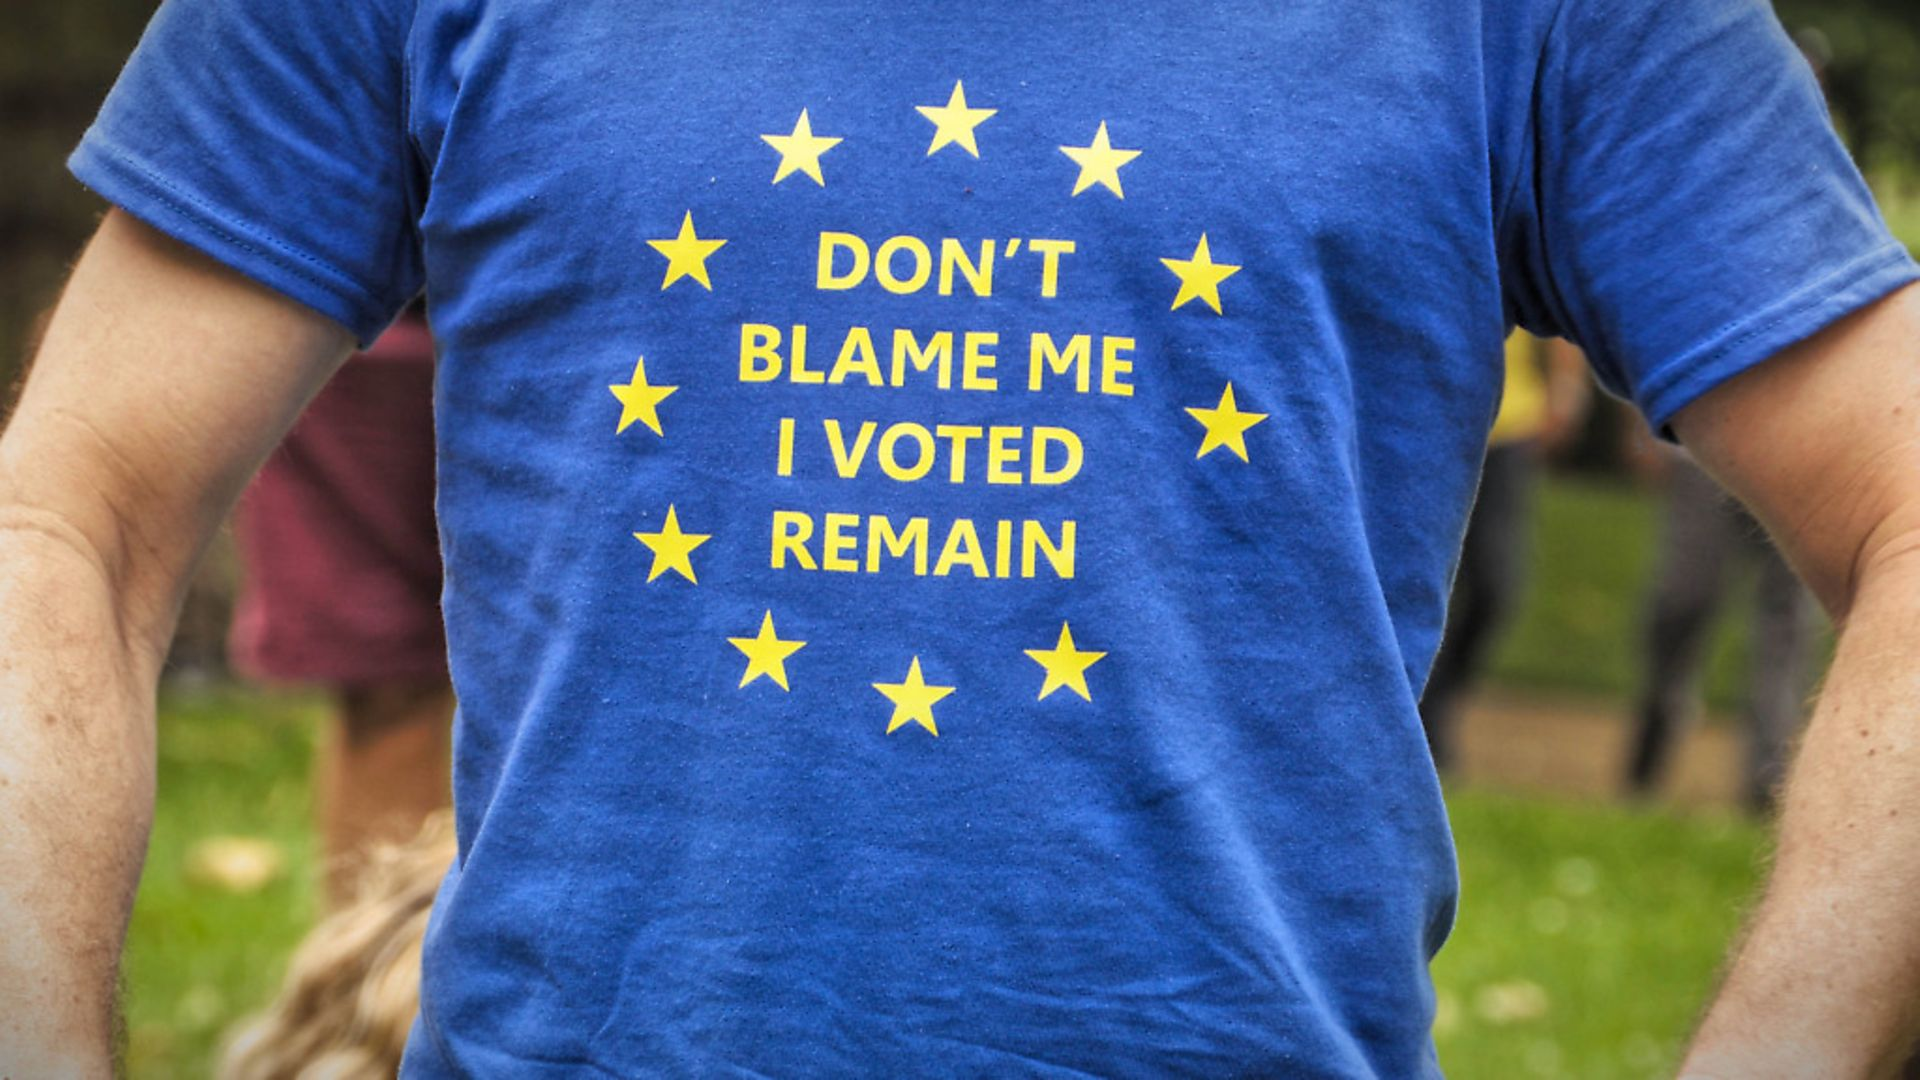 Pro-European Union supporters and pro-Brexit supporters hold up placards during a demonstration against Brexit in Green Park in London on July 9, 2016. The British government on Saturday formally rejected a petition signed by more than 4.125 million people calling for a second referendum on Britain's membership of the EU.   (Photo by Gail Orenstein/NurPhoto via Getty Images) - Credit: NurPhoto via Getty Images